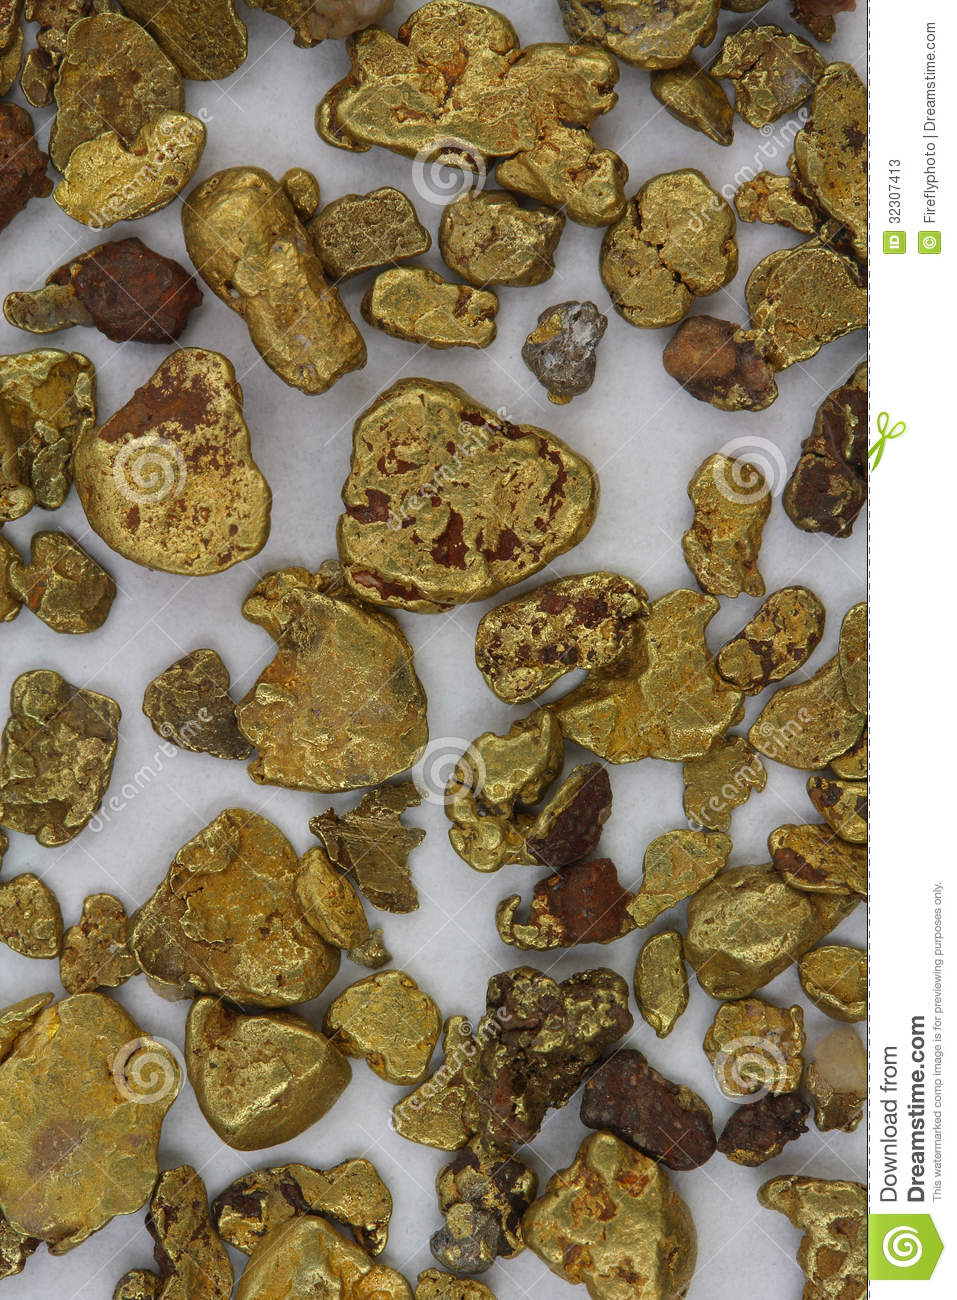 California Placer Gold Nuggets Stock Image - Image of placer, dust